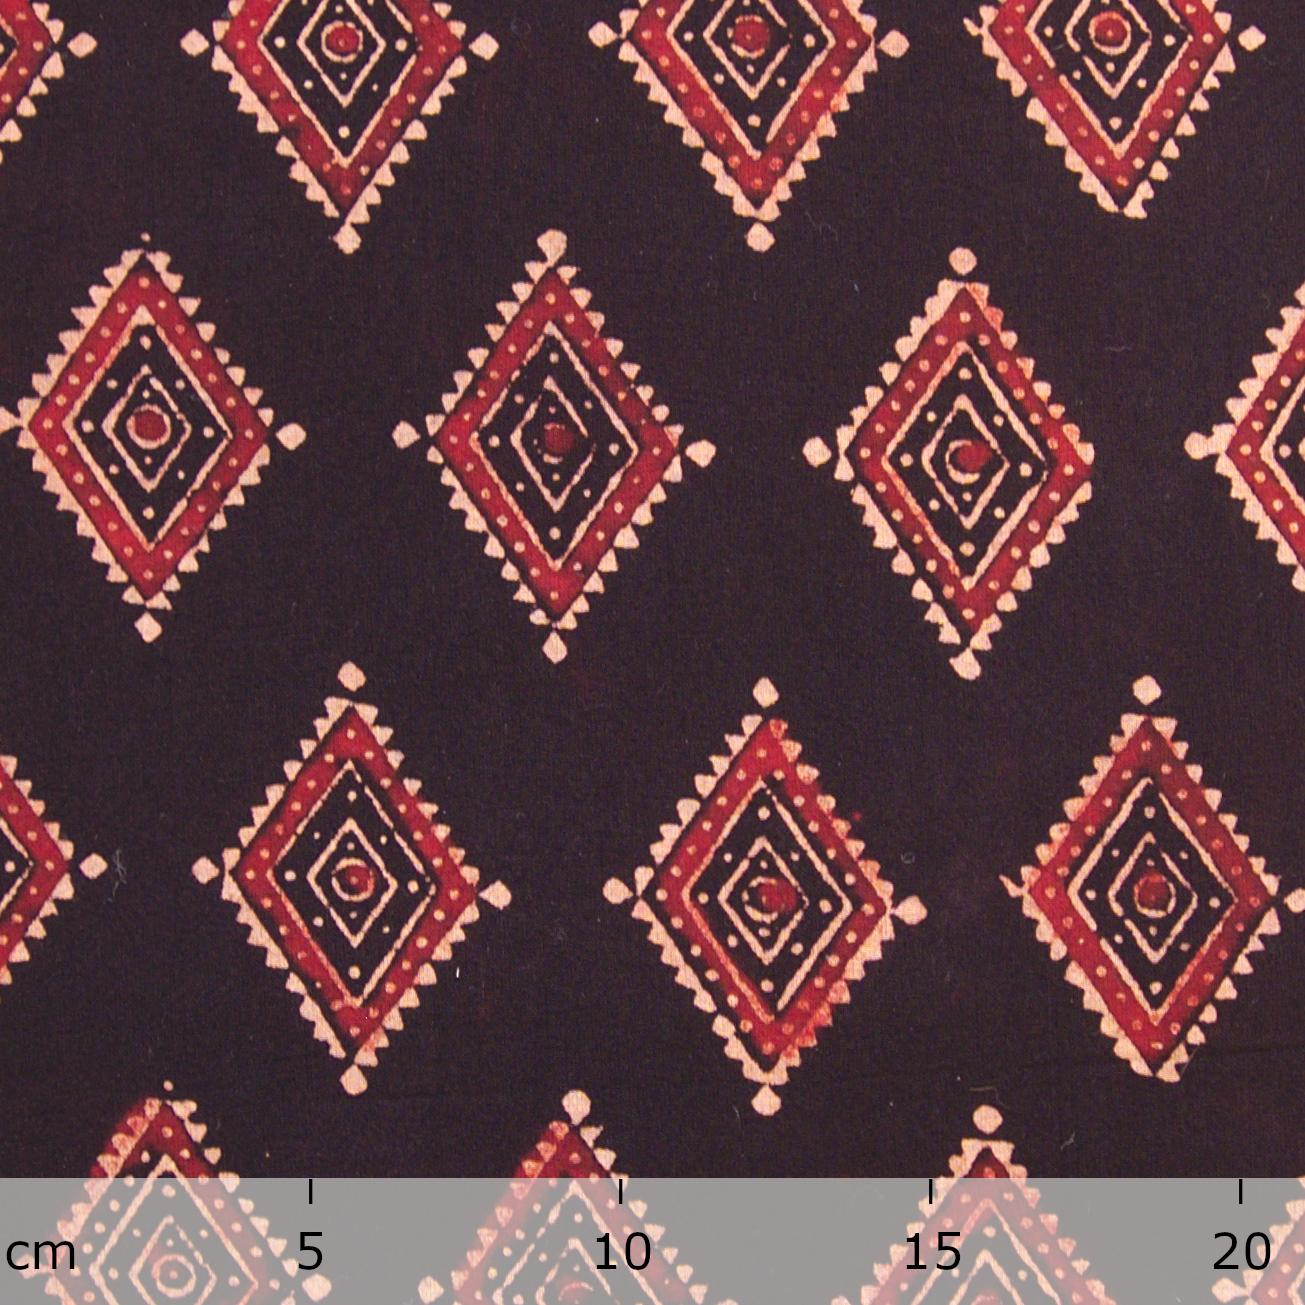 Block Printed Fabric, 100% Cotton, Ajrak Design: Black Base, Red, Beige Diamond. Ruler